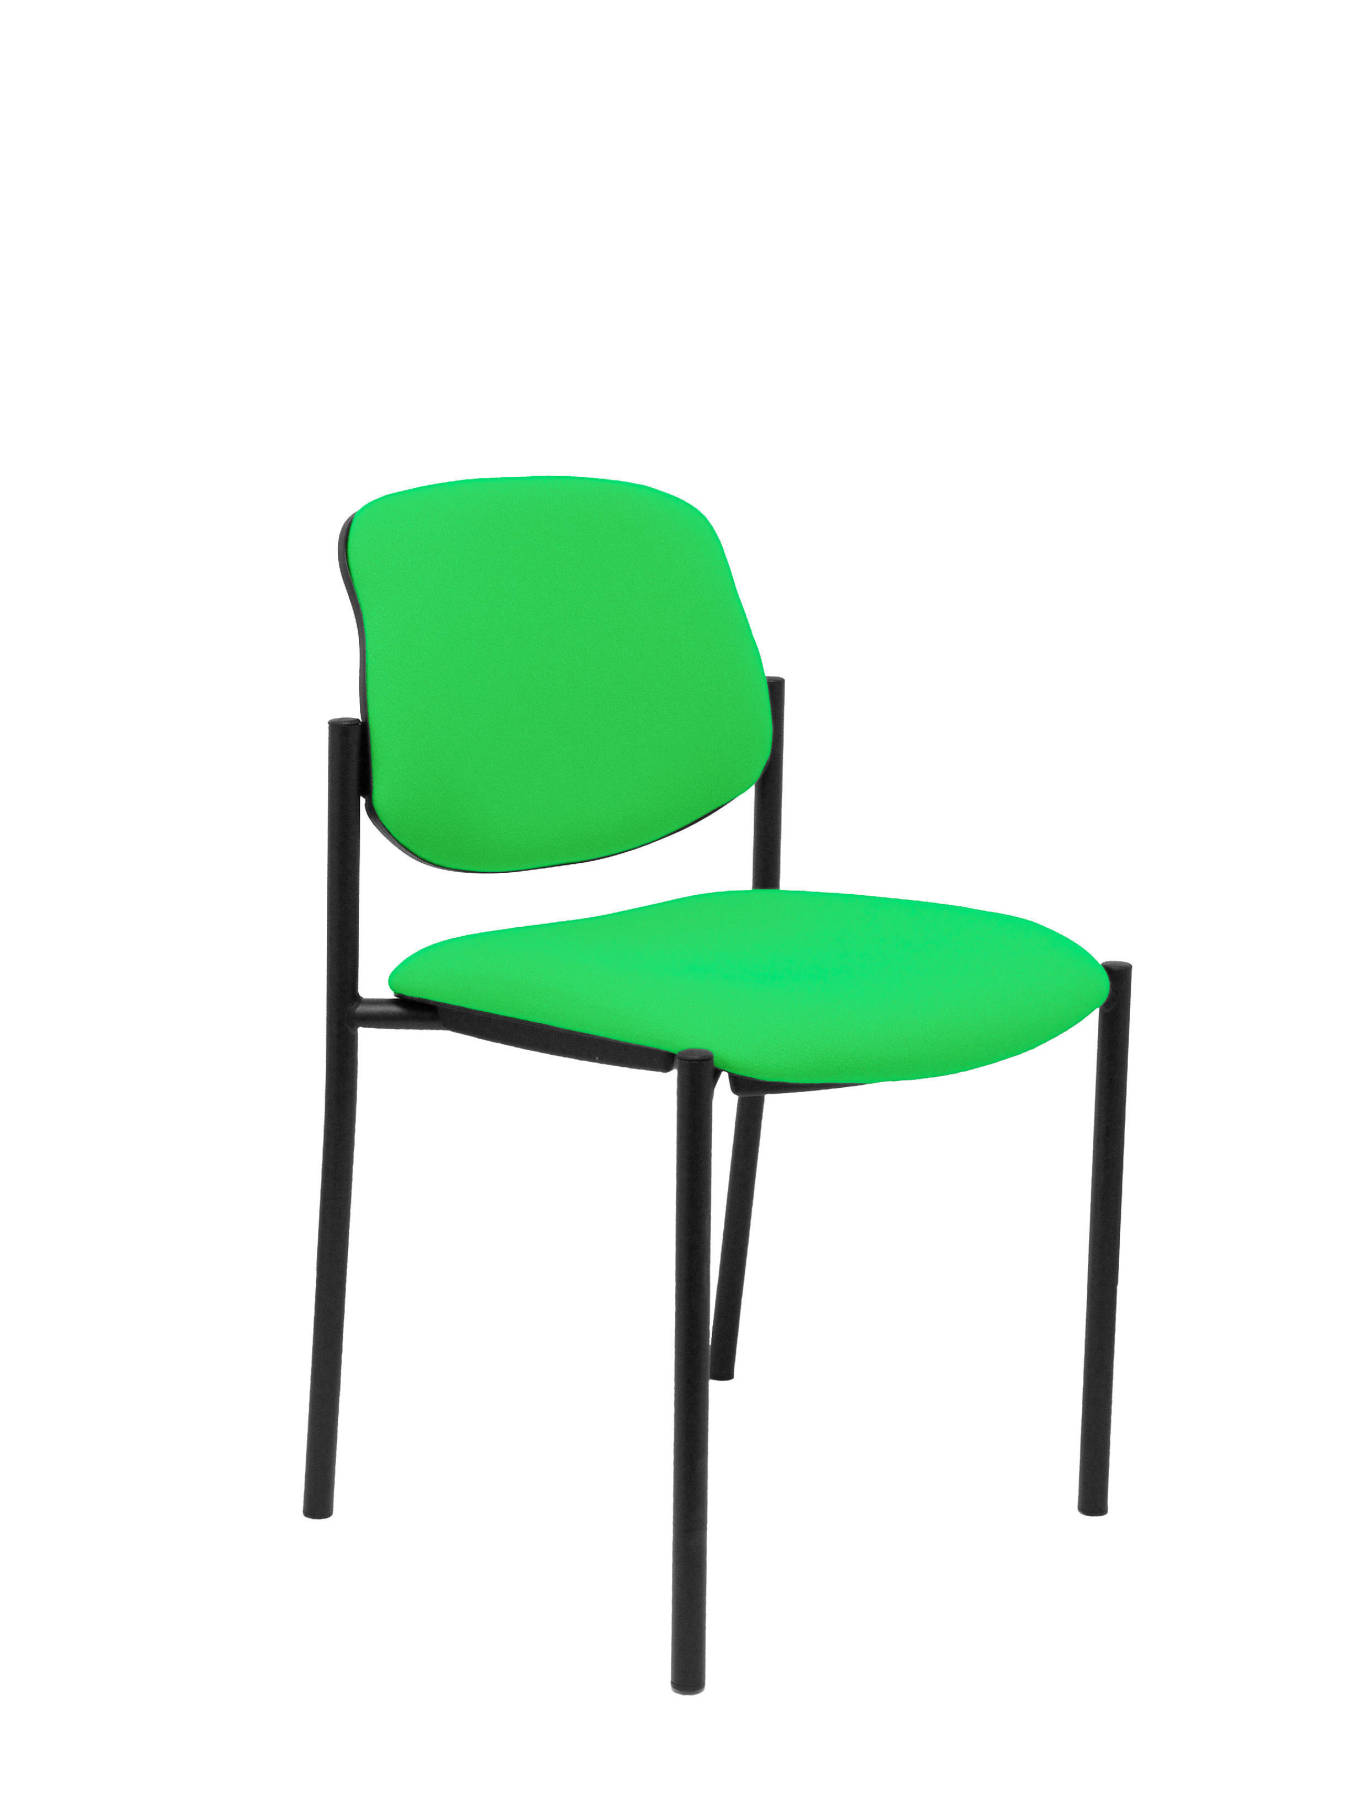 Visitor Chair 4's Topsy And Estructrua Negro-up Seat And Backstop Upholstered In BALI Tissue Color Pistachio TAPHOLE AND C